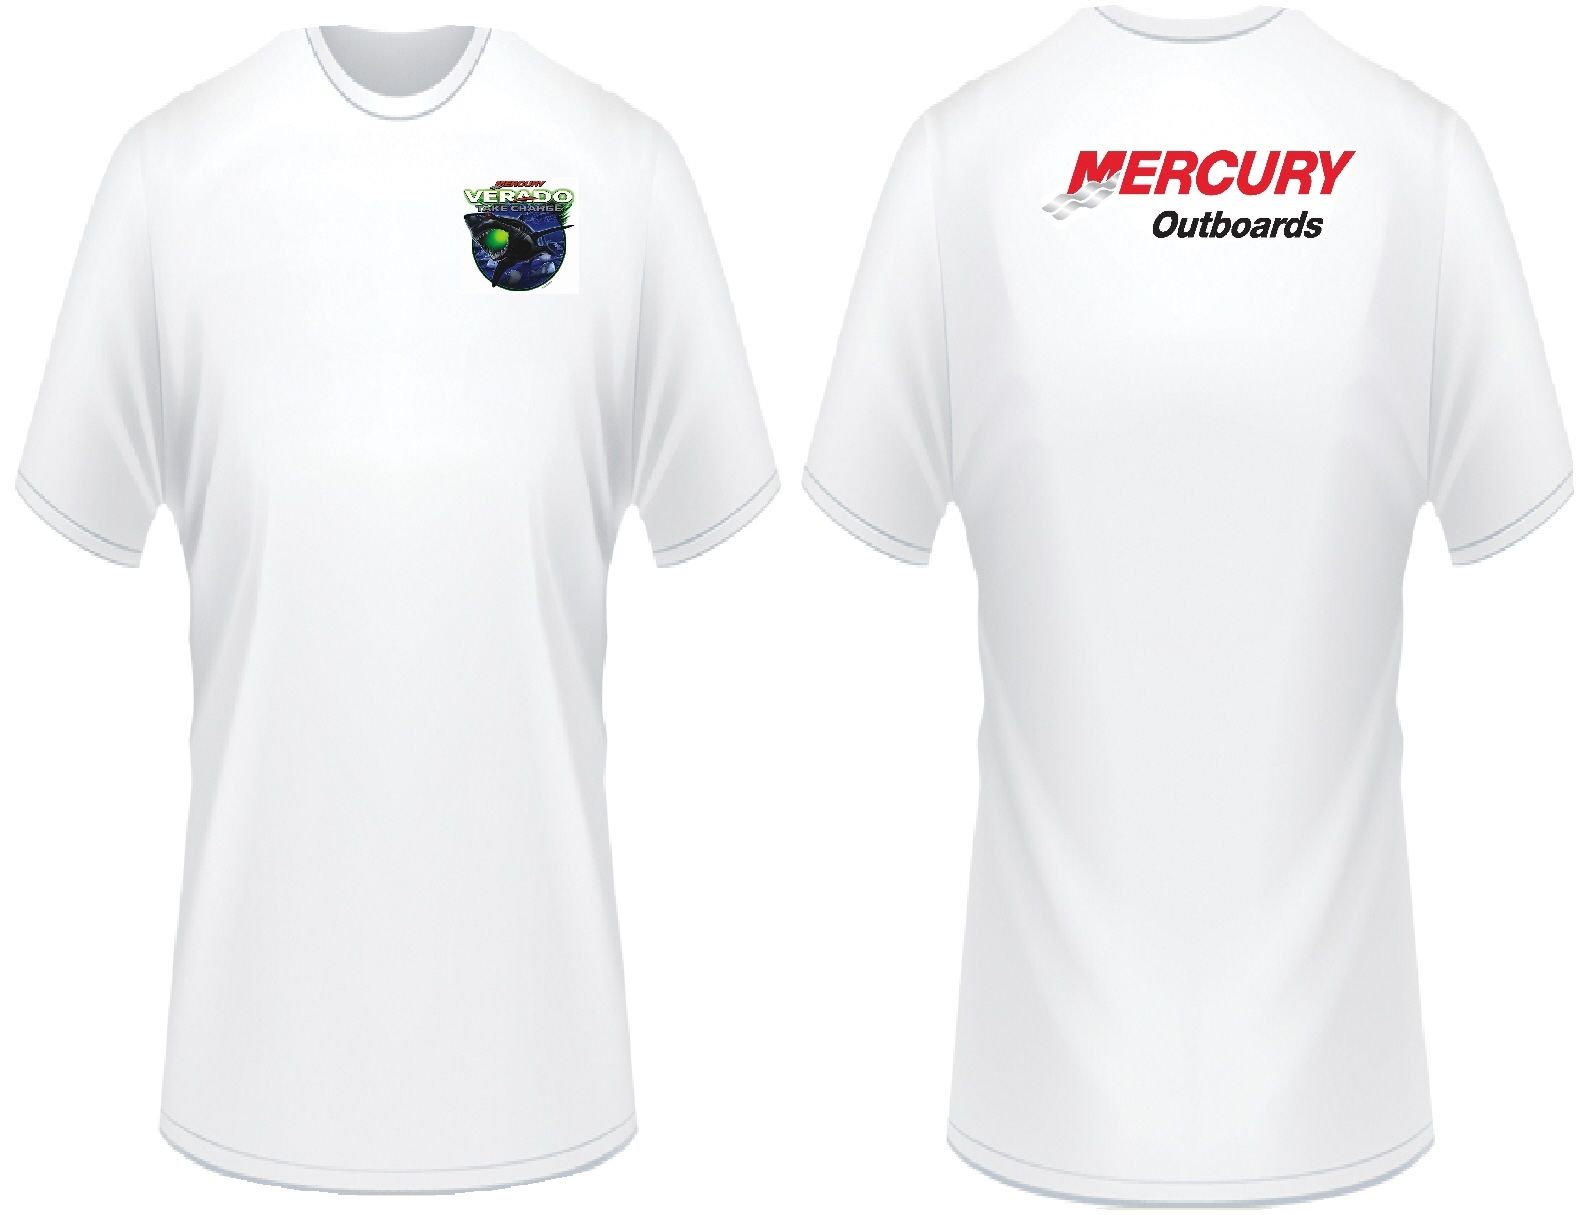 Mercury Outboards T-Shirt